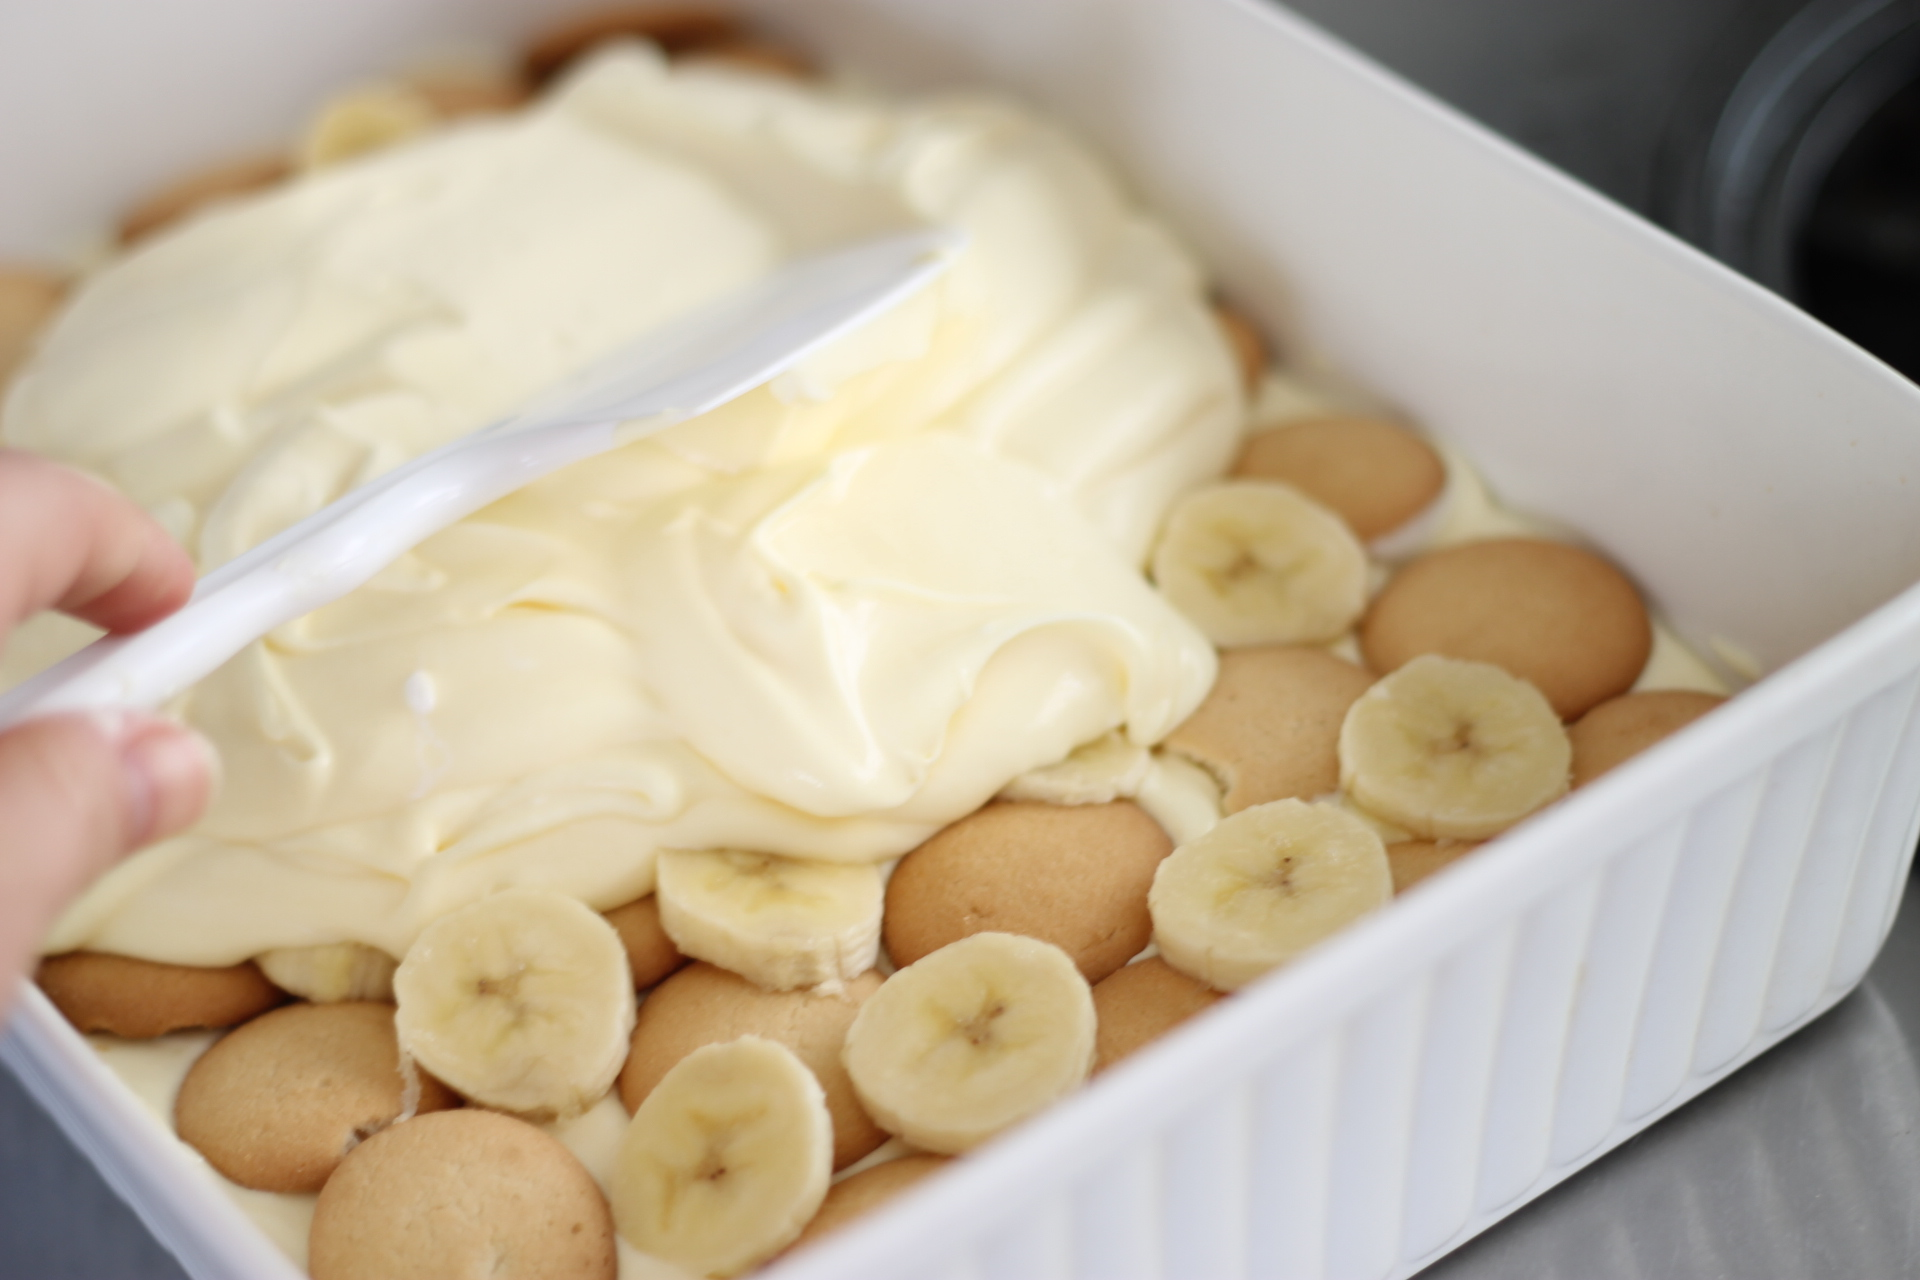 What can you make delicious from bananas, cottage cheese